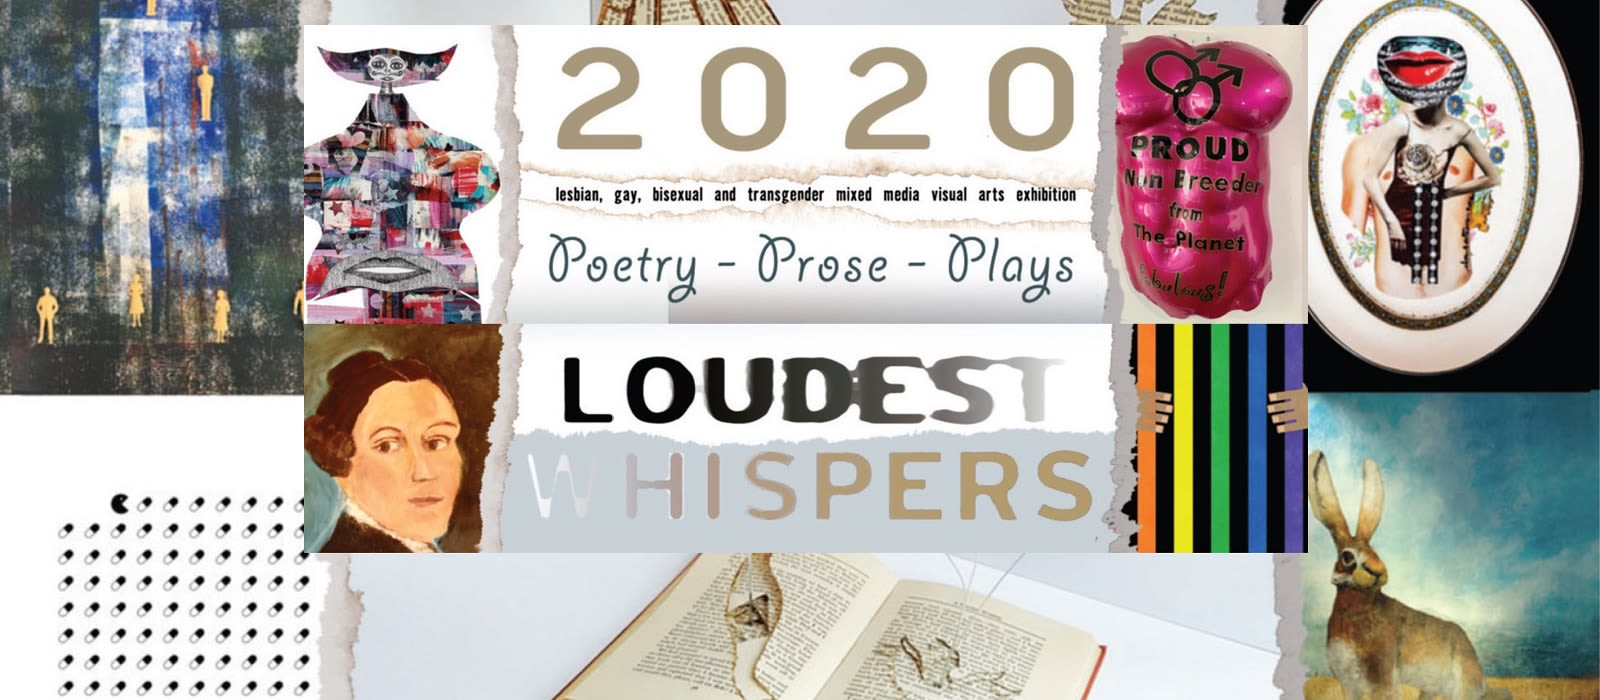 Poster of the Loudest Whispers Exhibition, featuring some of the artwork in the exhibition.